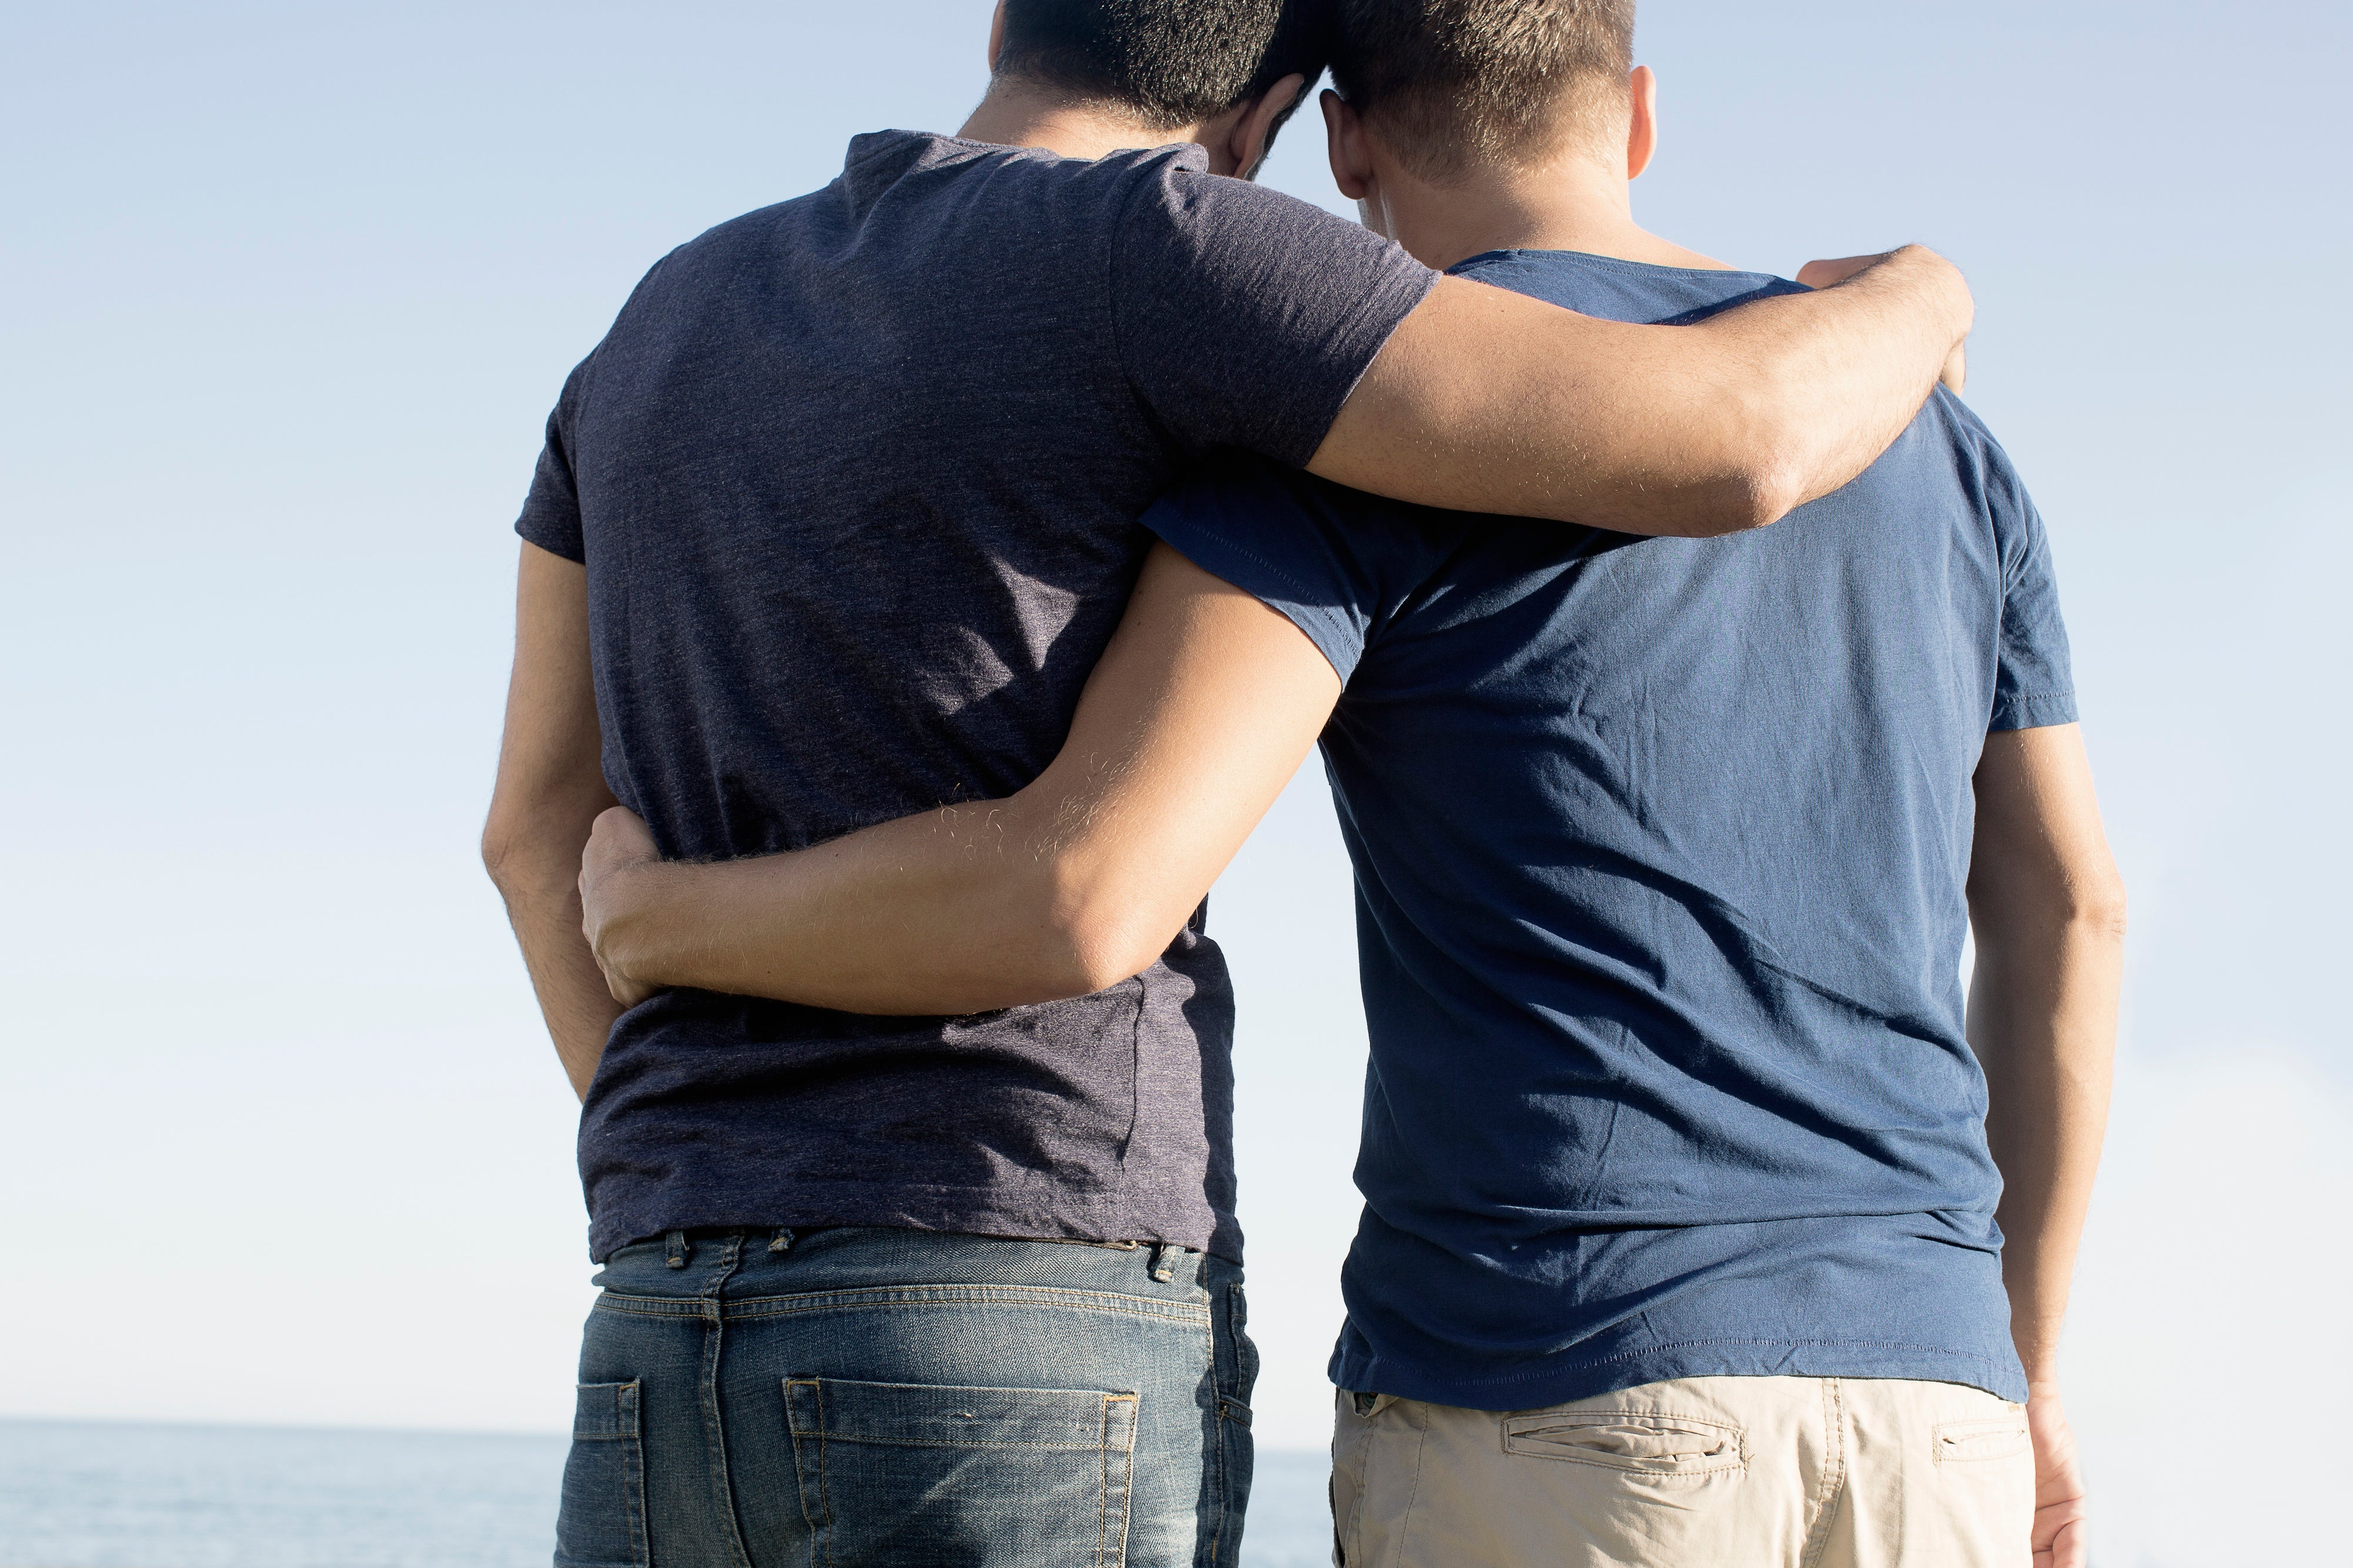 Homosexuality is not a choice evidence